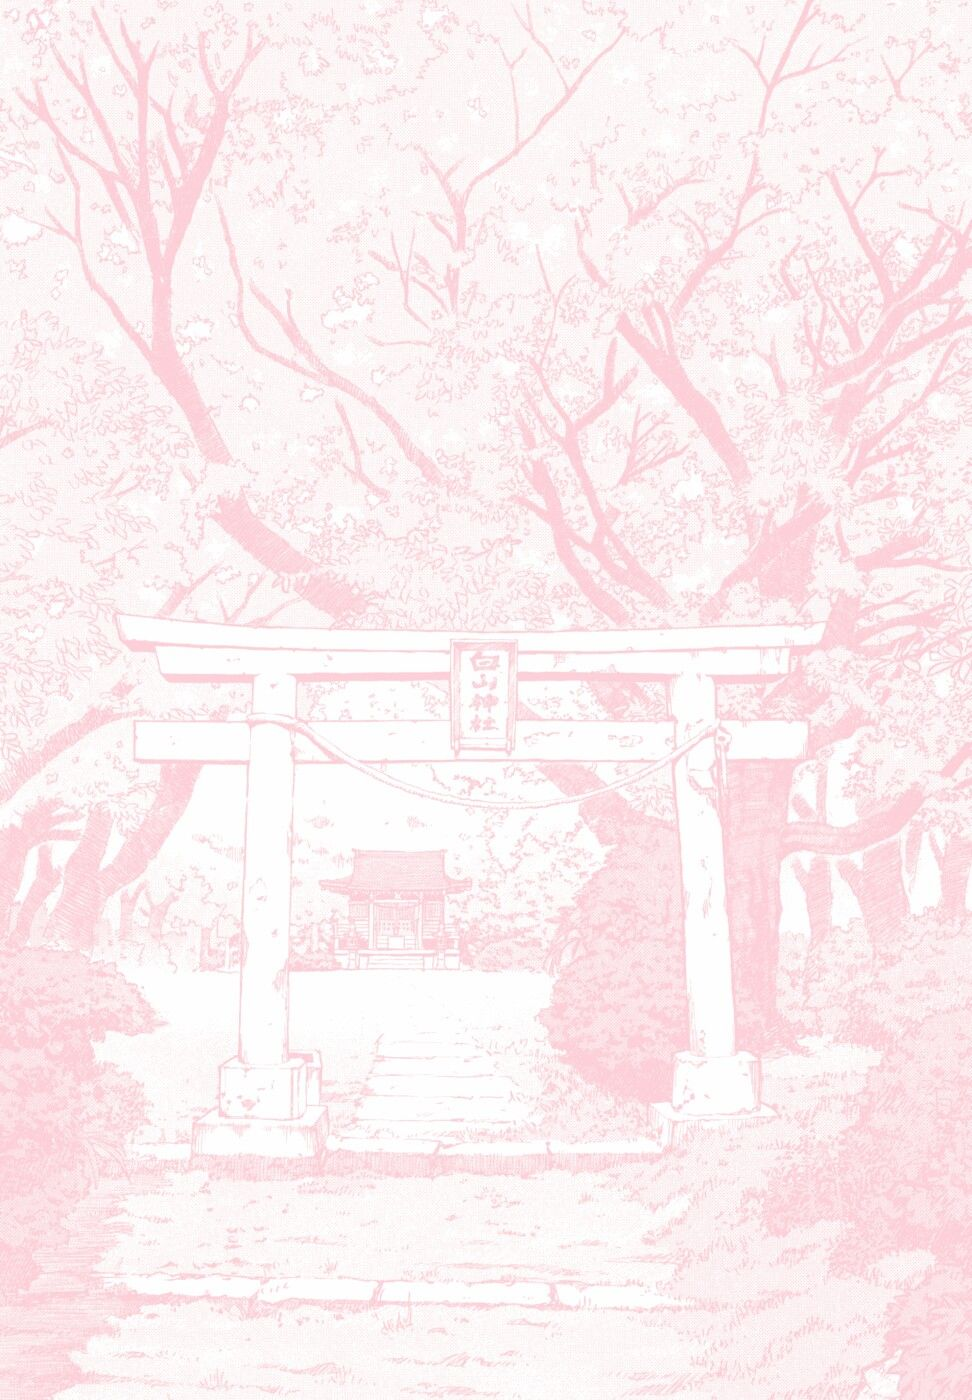 Pink Anime Aesthetic Background